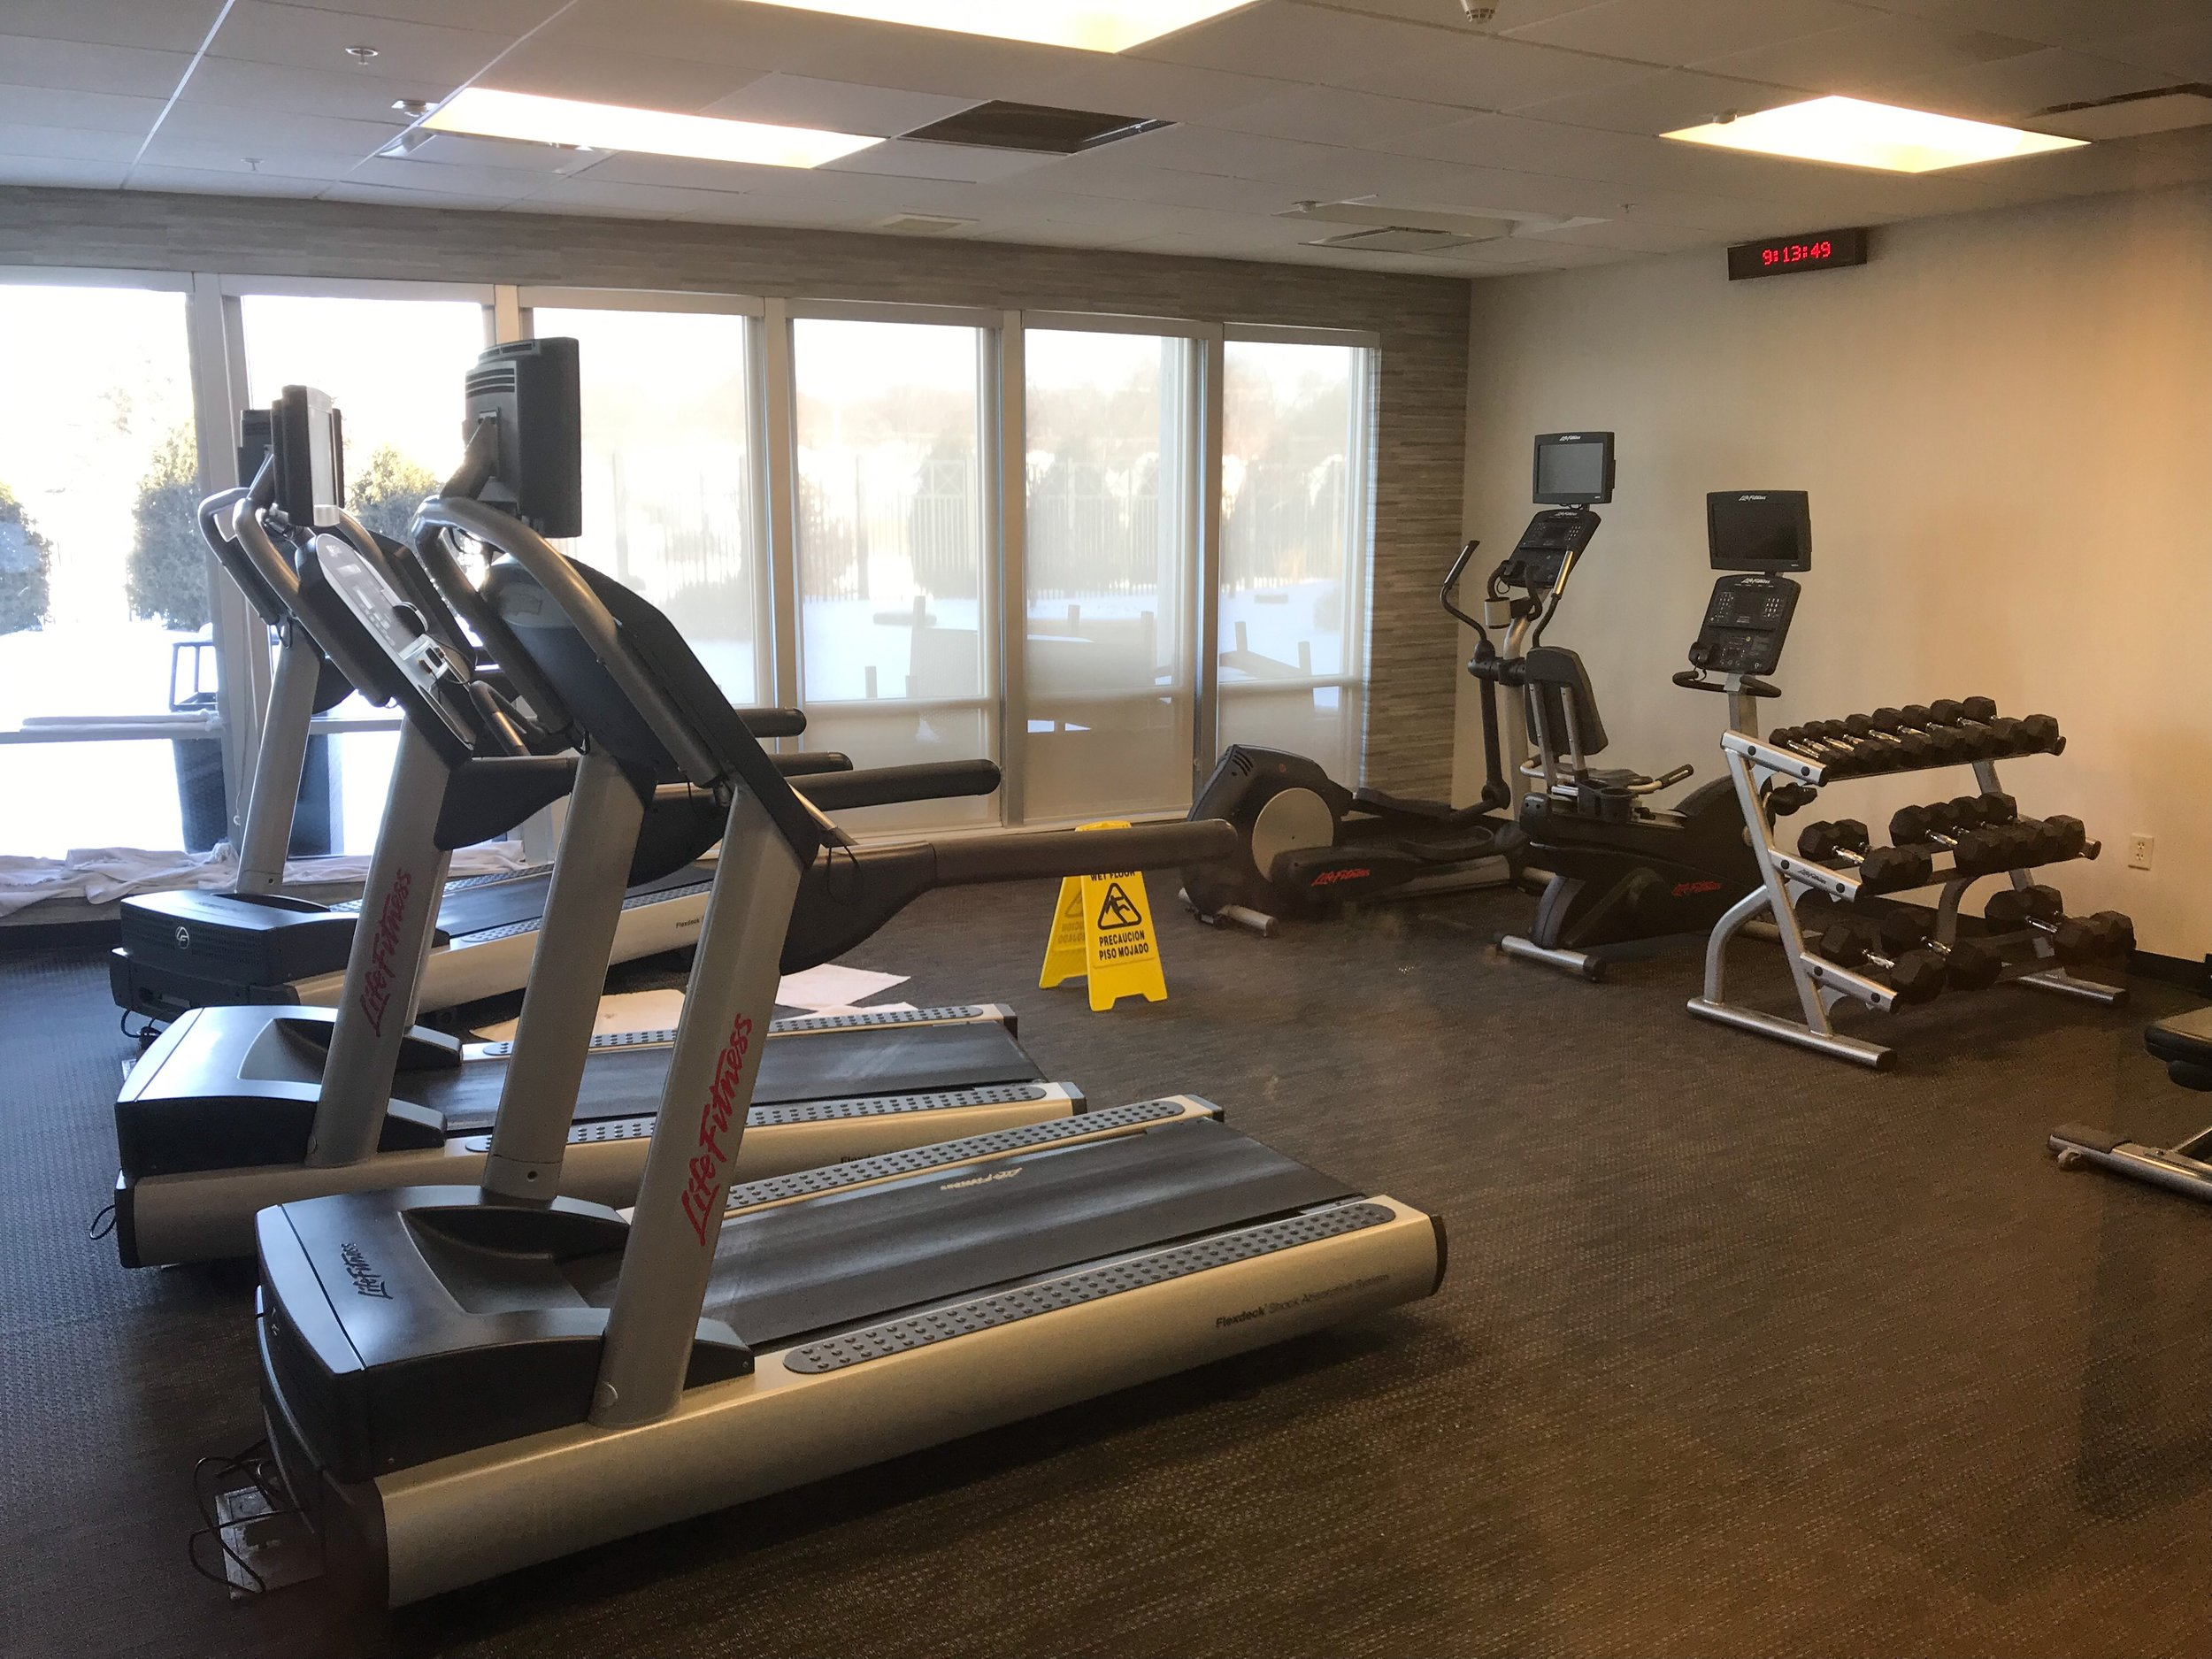 The workout room had. decent selection of equipment, especially considering it was freezing cold outside during my stay.